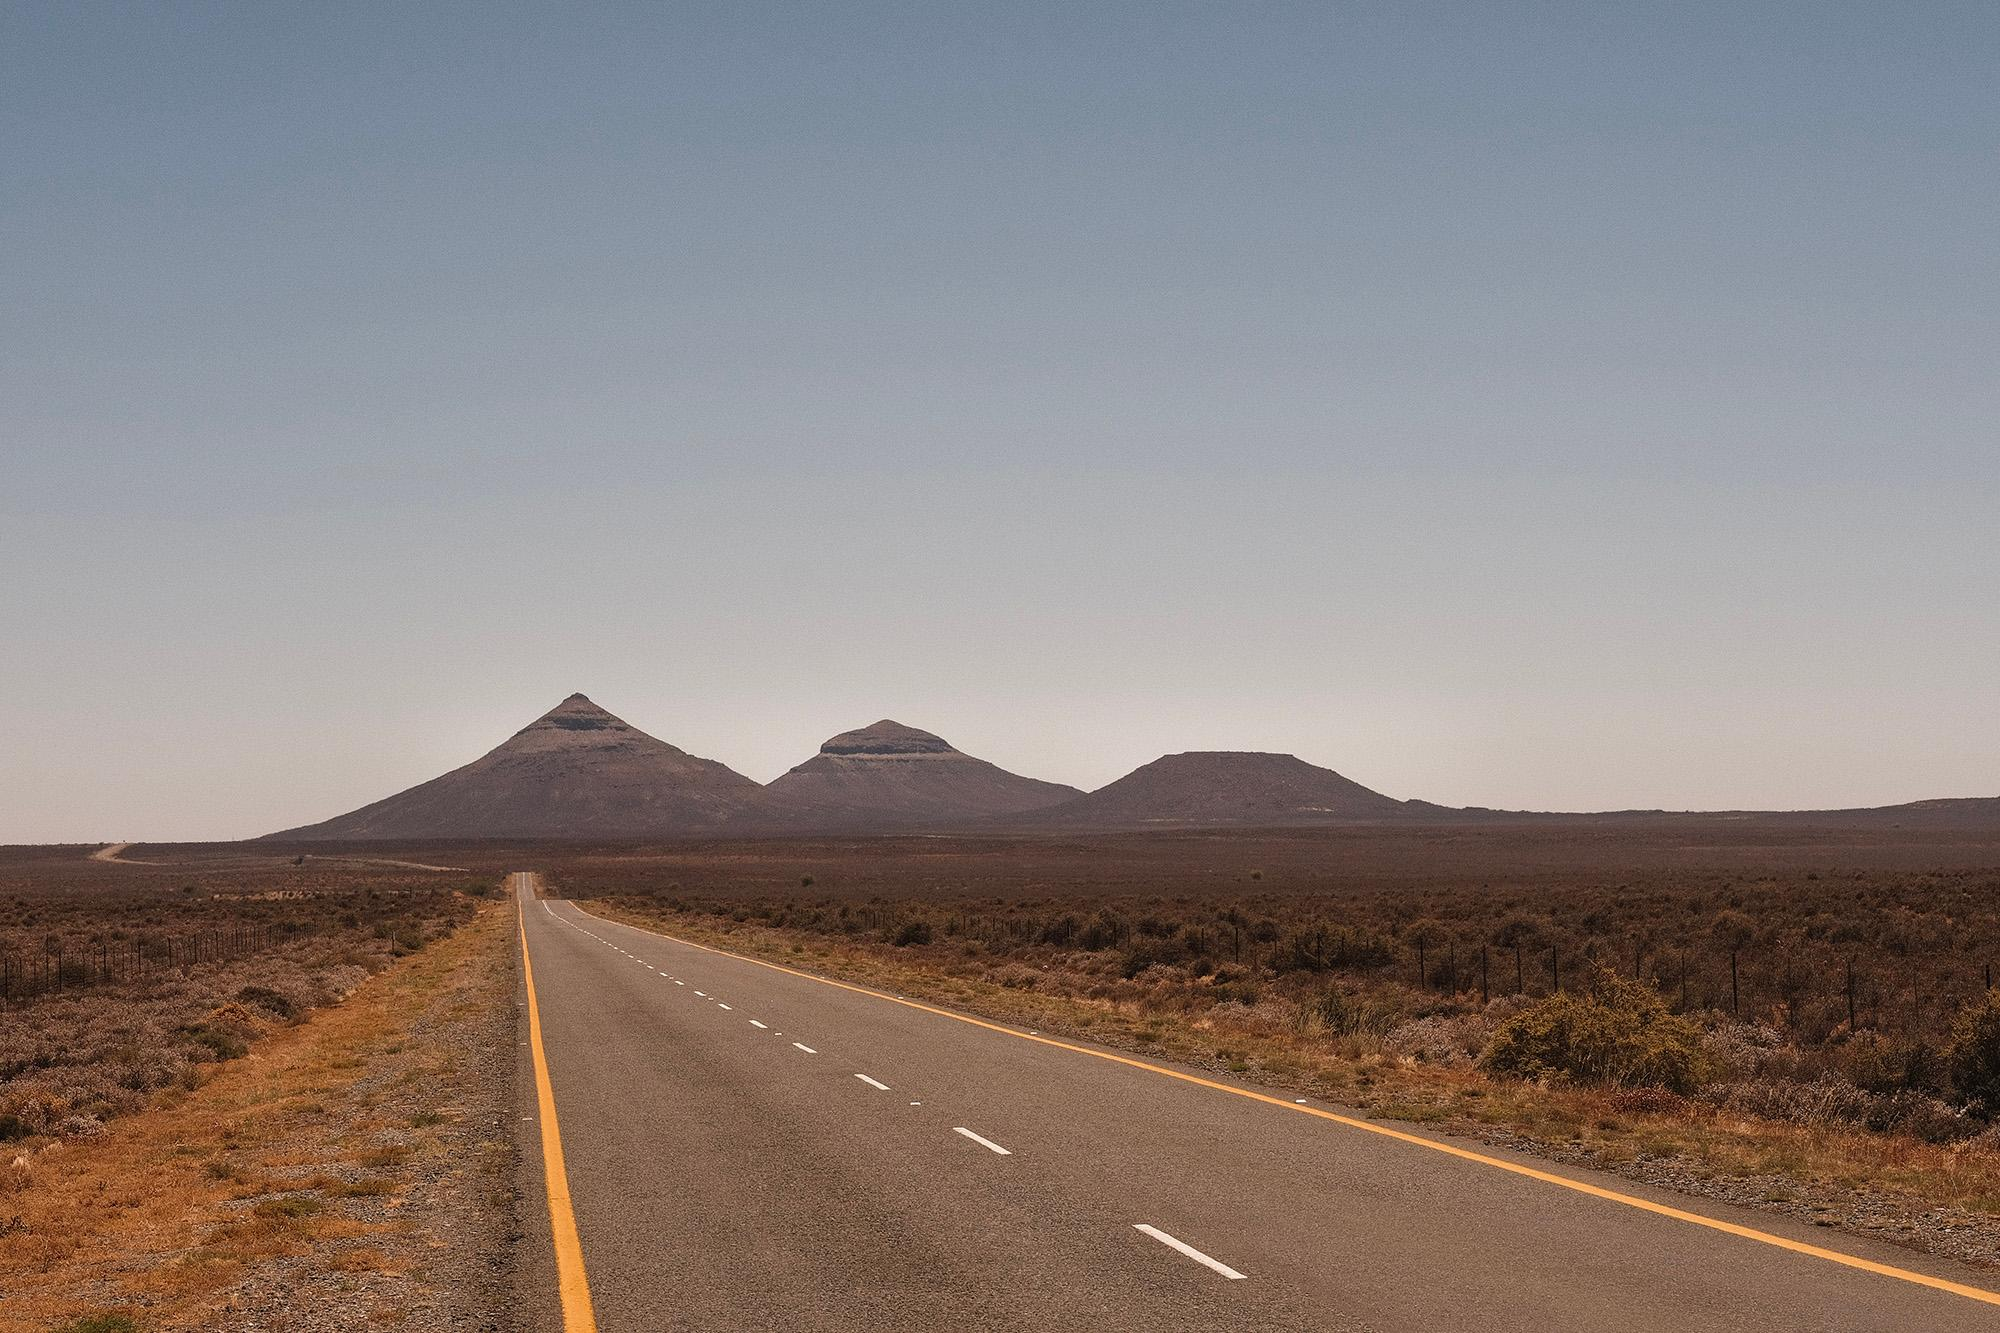 The road to Brandvlei, the last settlement before Verneukpan.